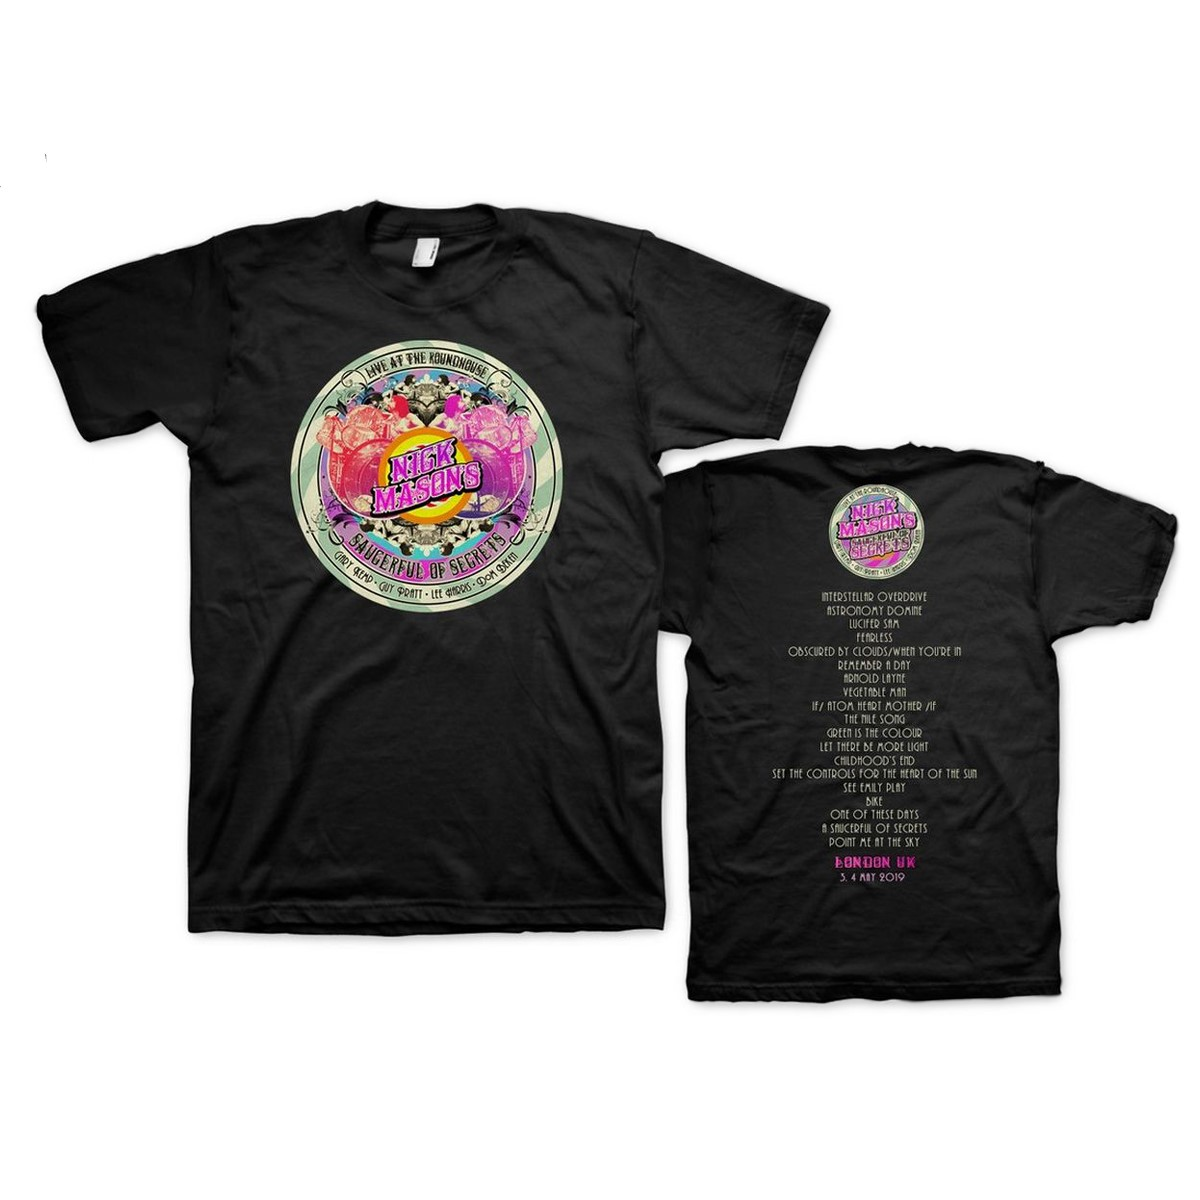 Nick Mason's Saucerful of Secrets Live At The Roundhouse Set List T-shirt